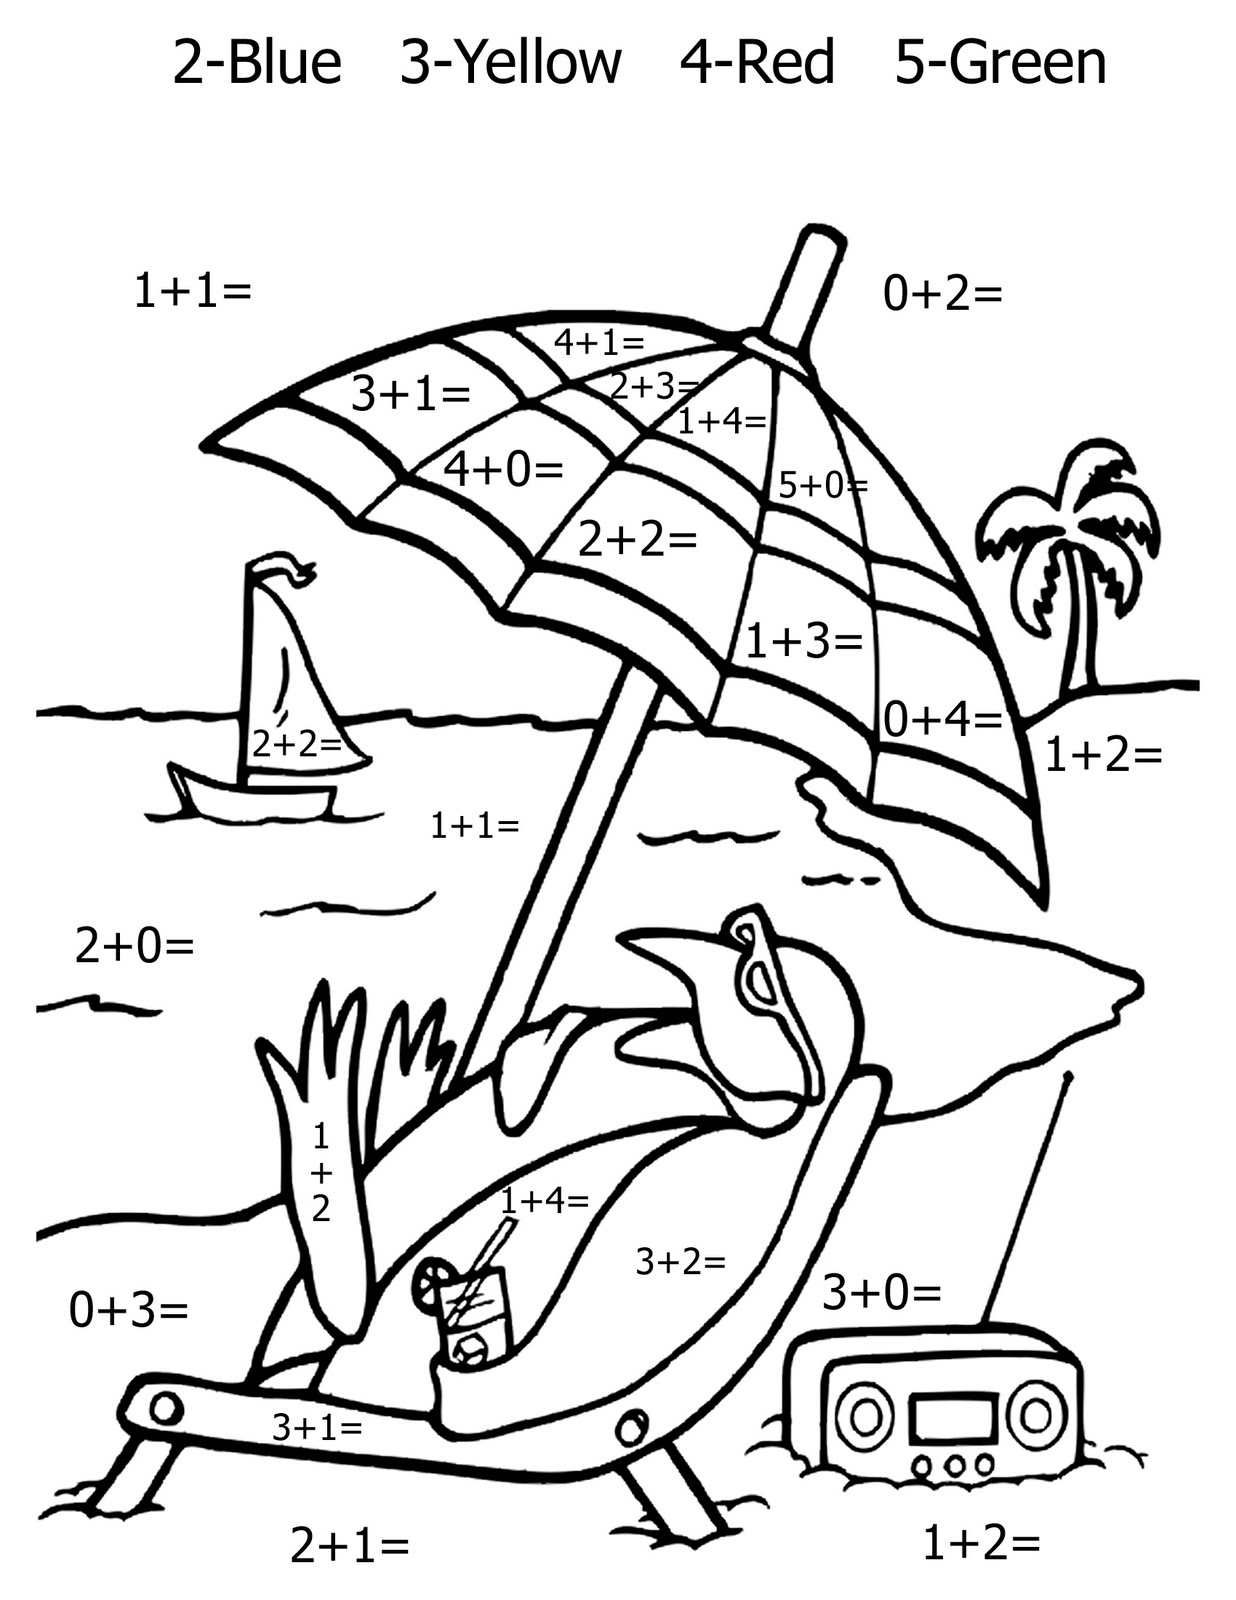 Coloring Pages Math : Free printable math coloring pages for kids best